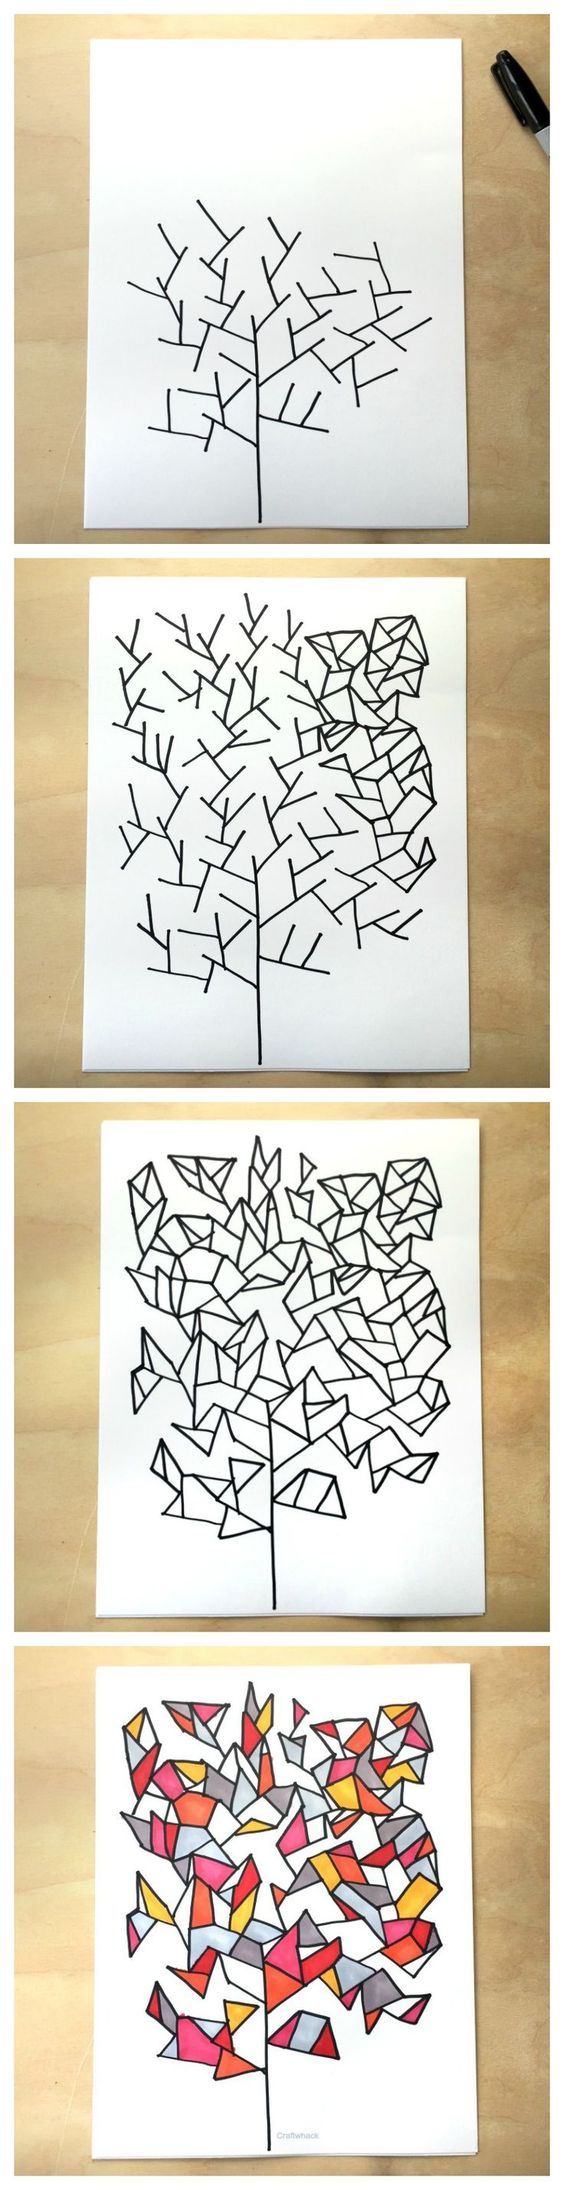 Simple drawing game- draw some geometry trees - from Tangle Art and Drawing Games for Kids book: